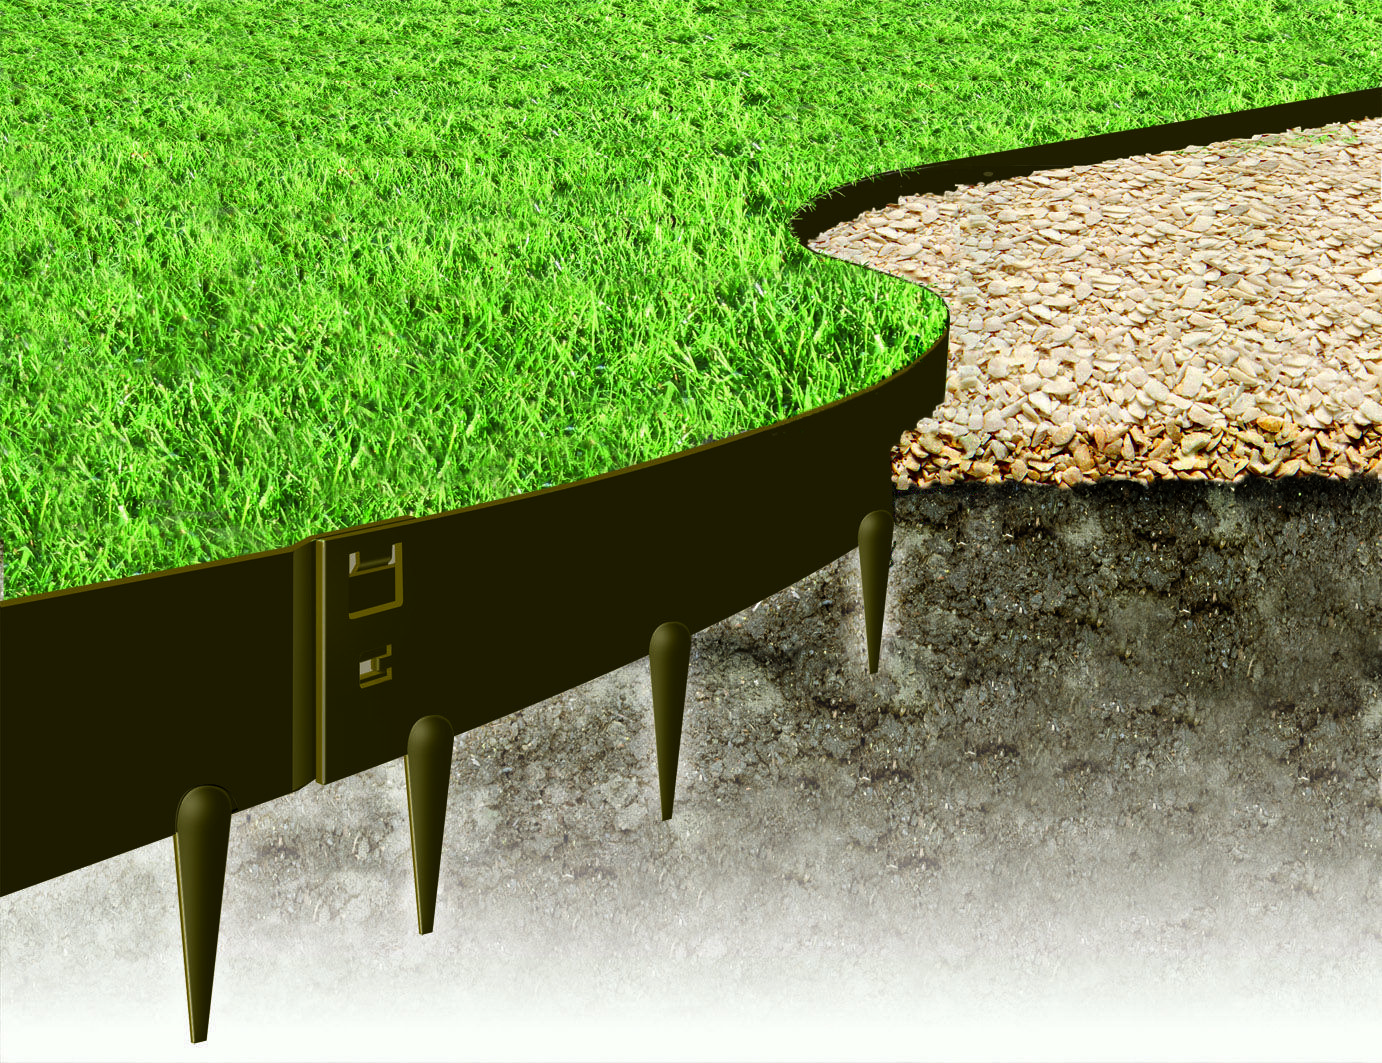 The Everedge Classic Lawn Edging Range Are Anchored Into 400 x 300